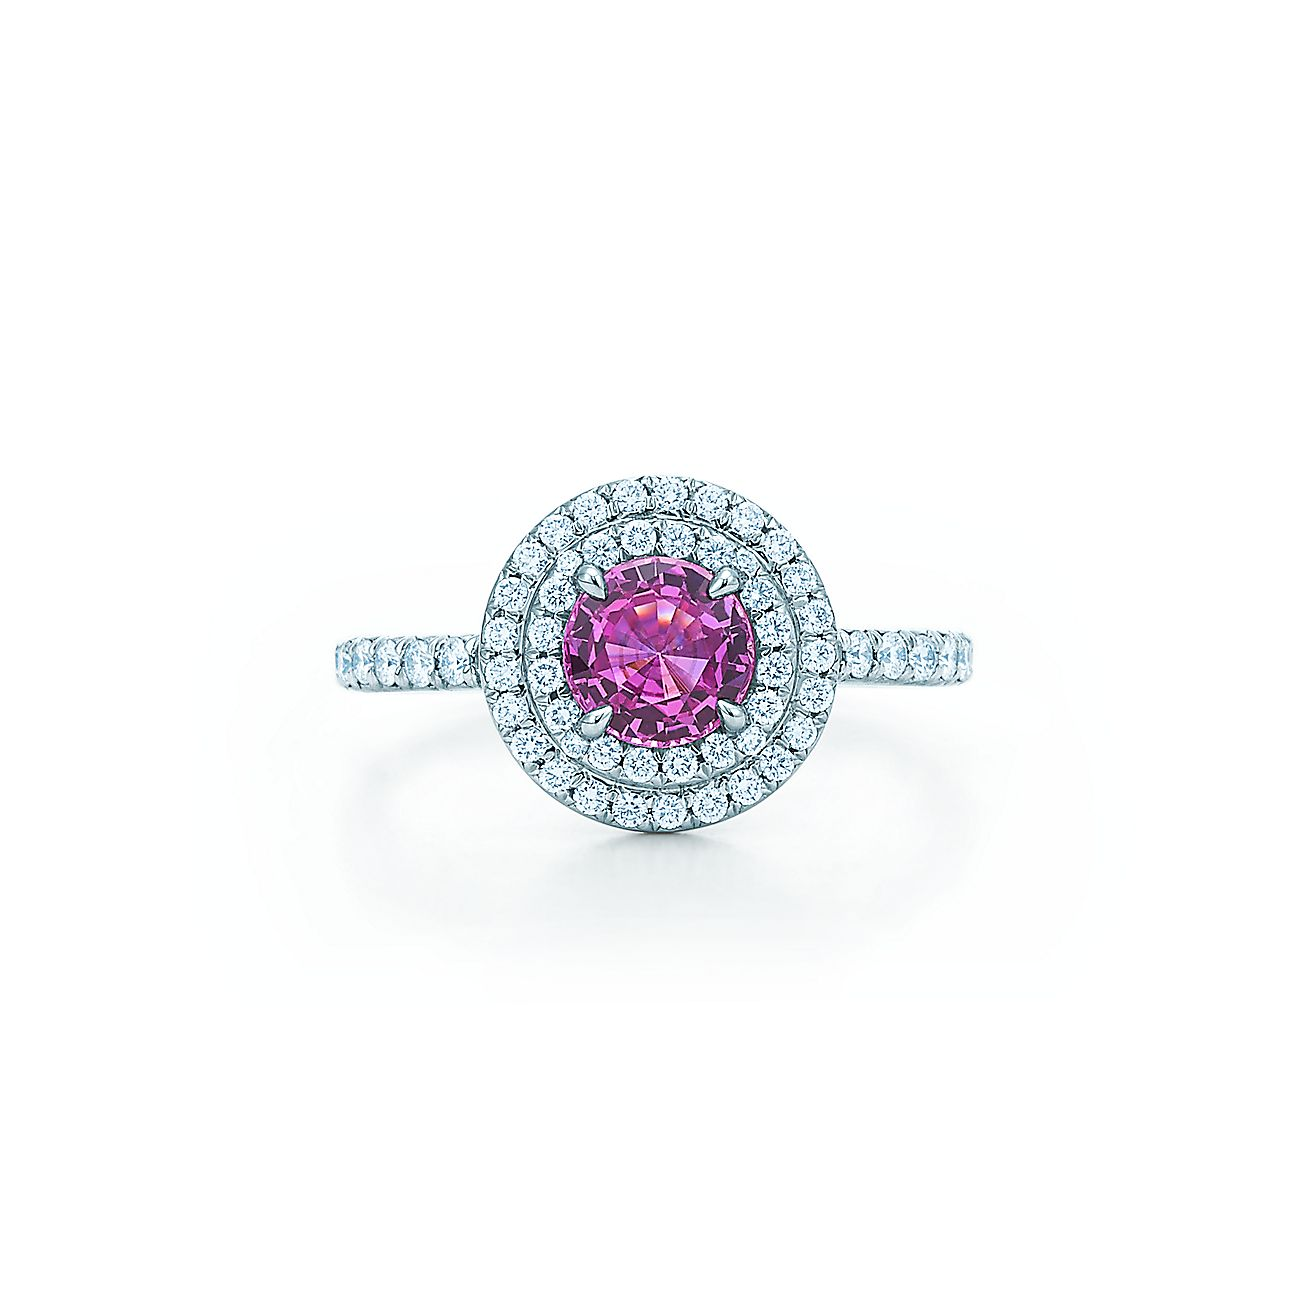 Tiffany Soleste® Ring In Platinum With A 45carat Pink Sapphire And  Diamonds  Tiffany & Co